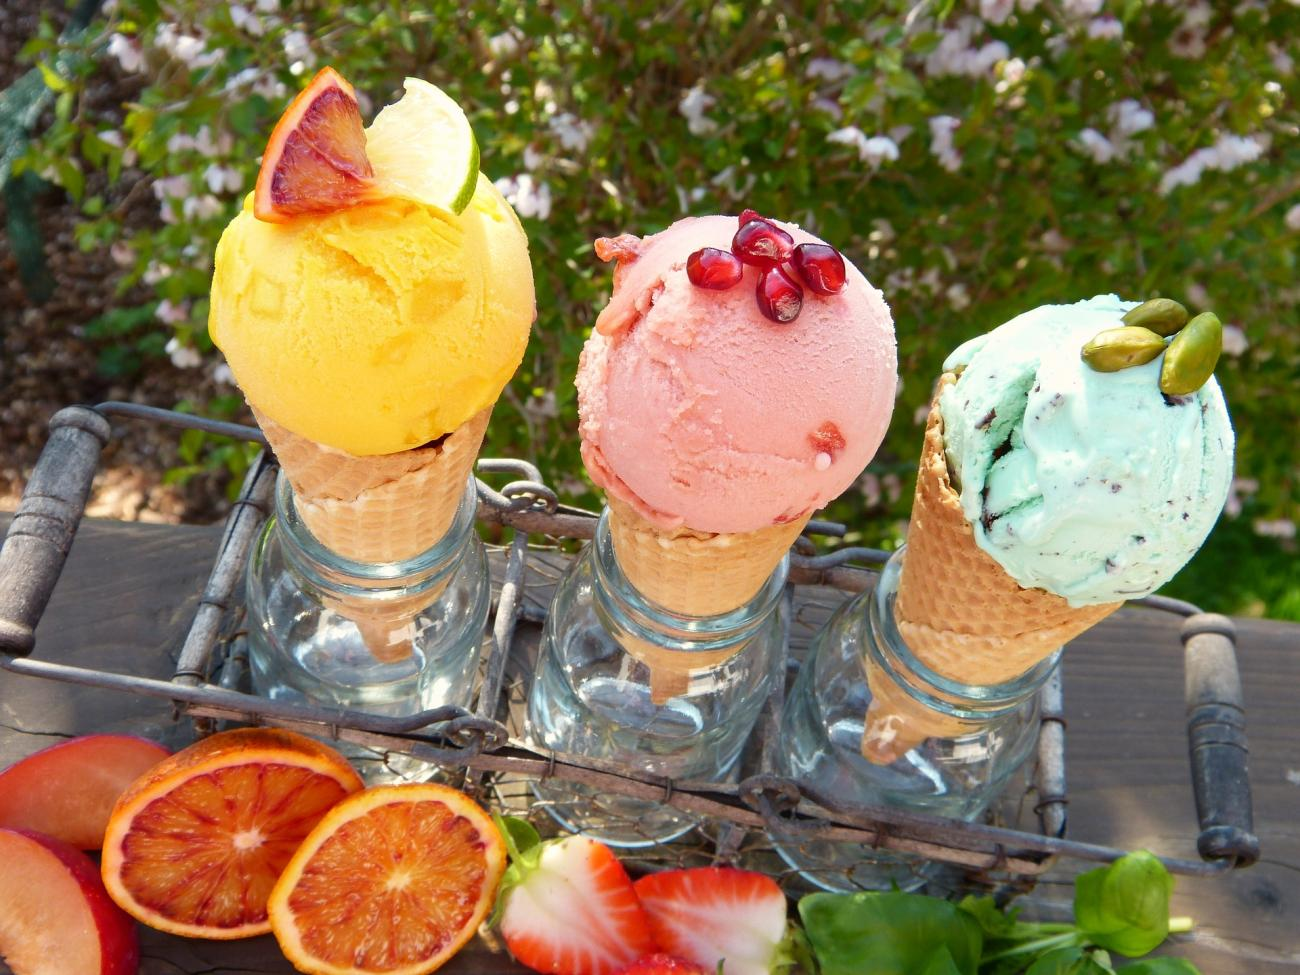 Ice Cream in the Hot Summer